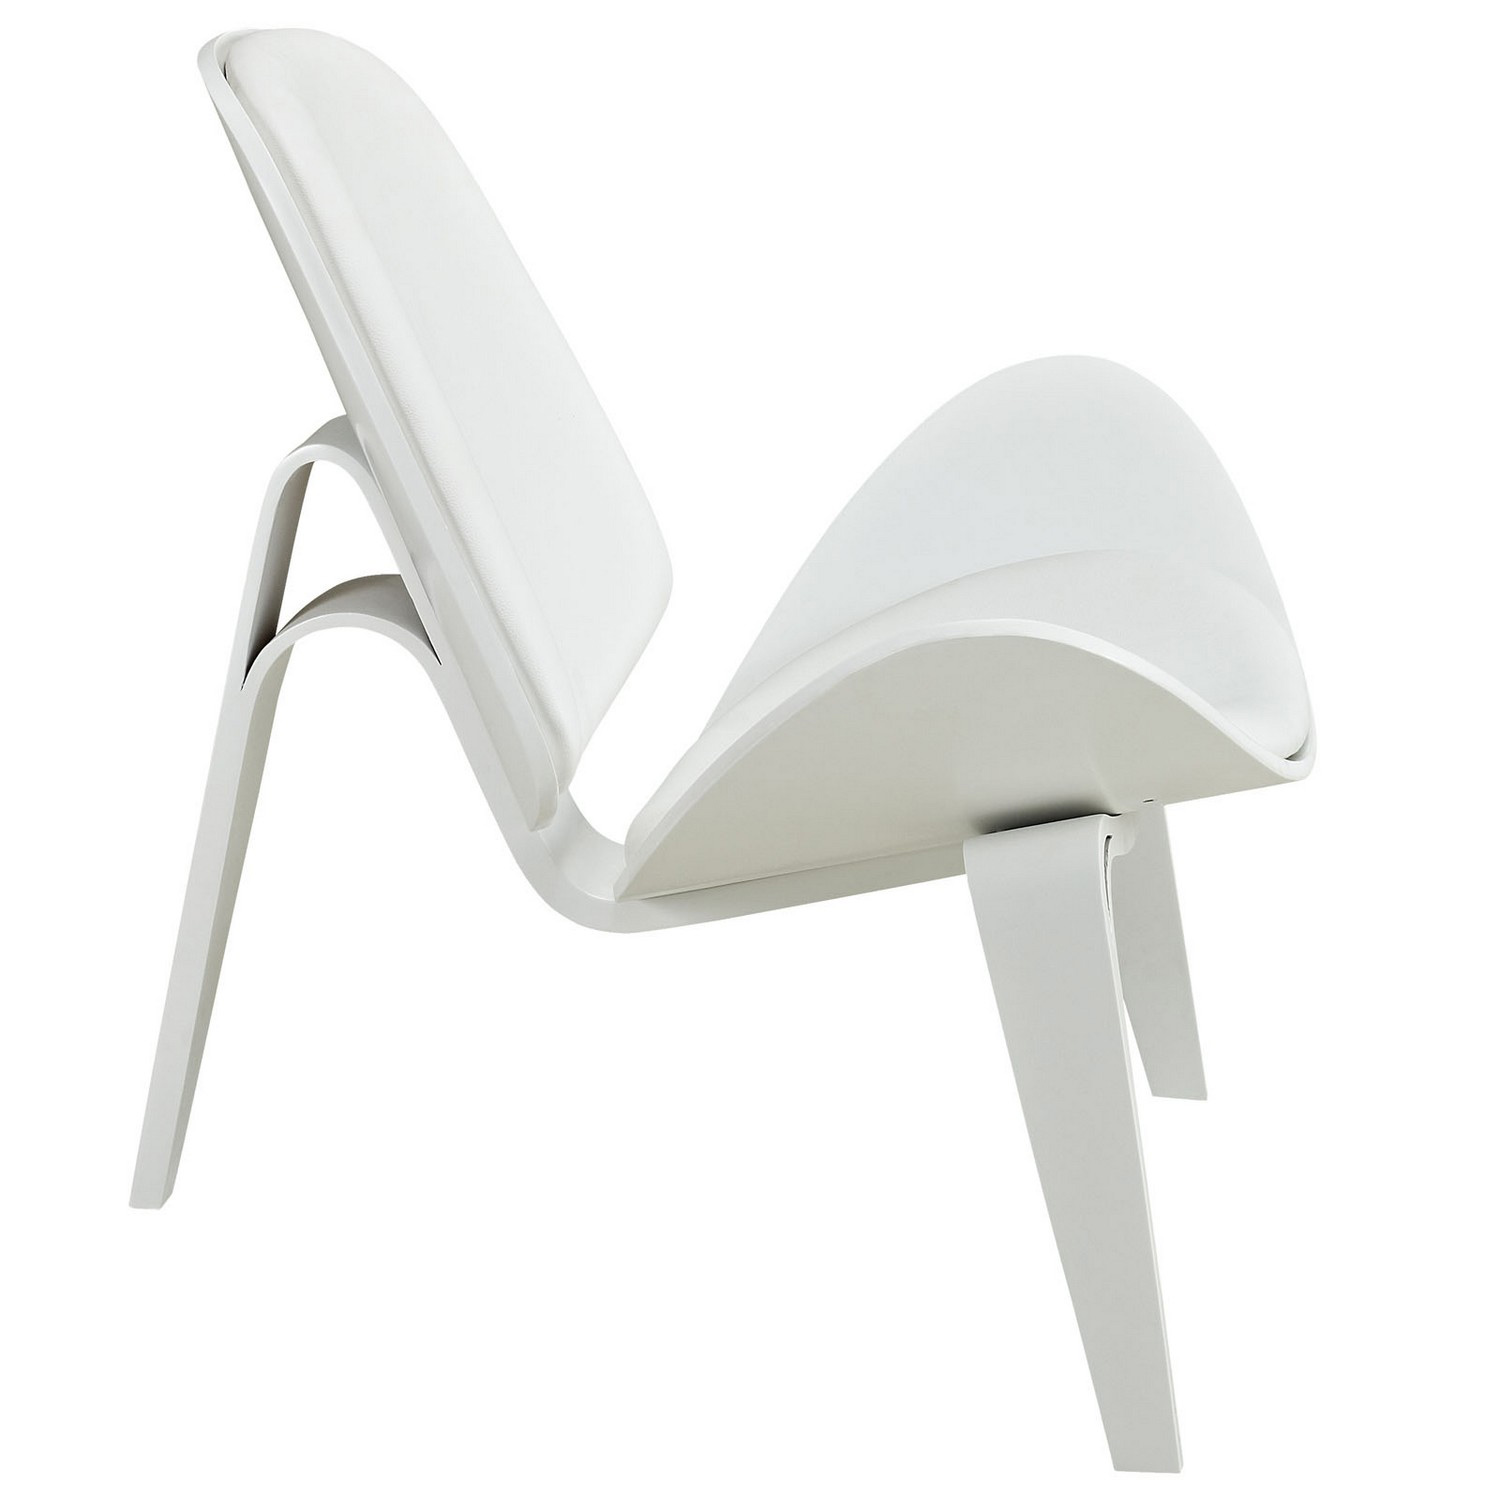 Modway Arch Lounge Chair - White